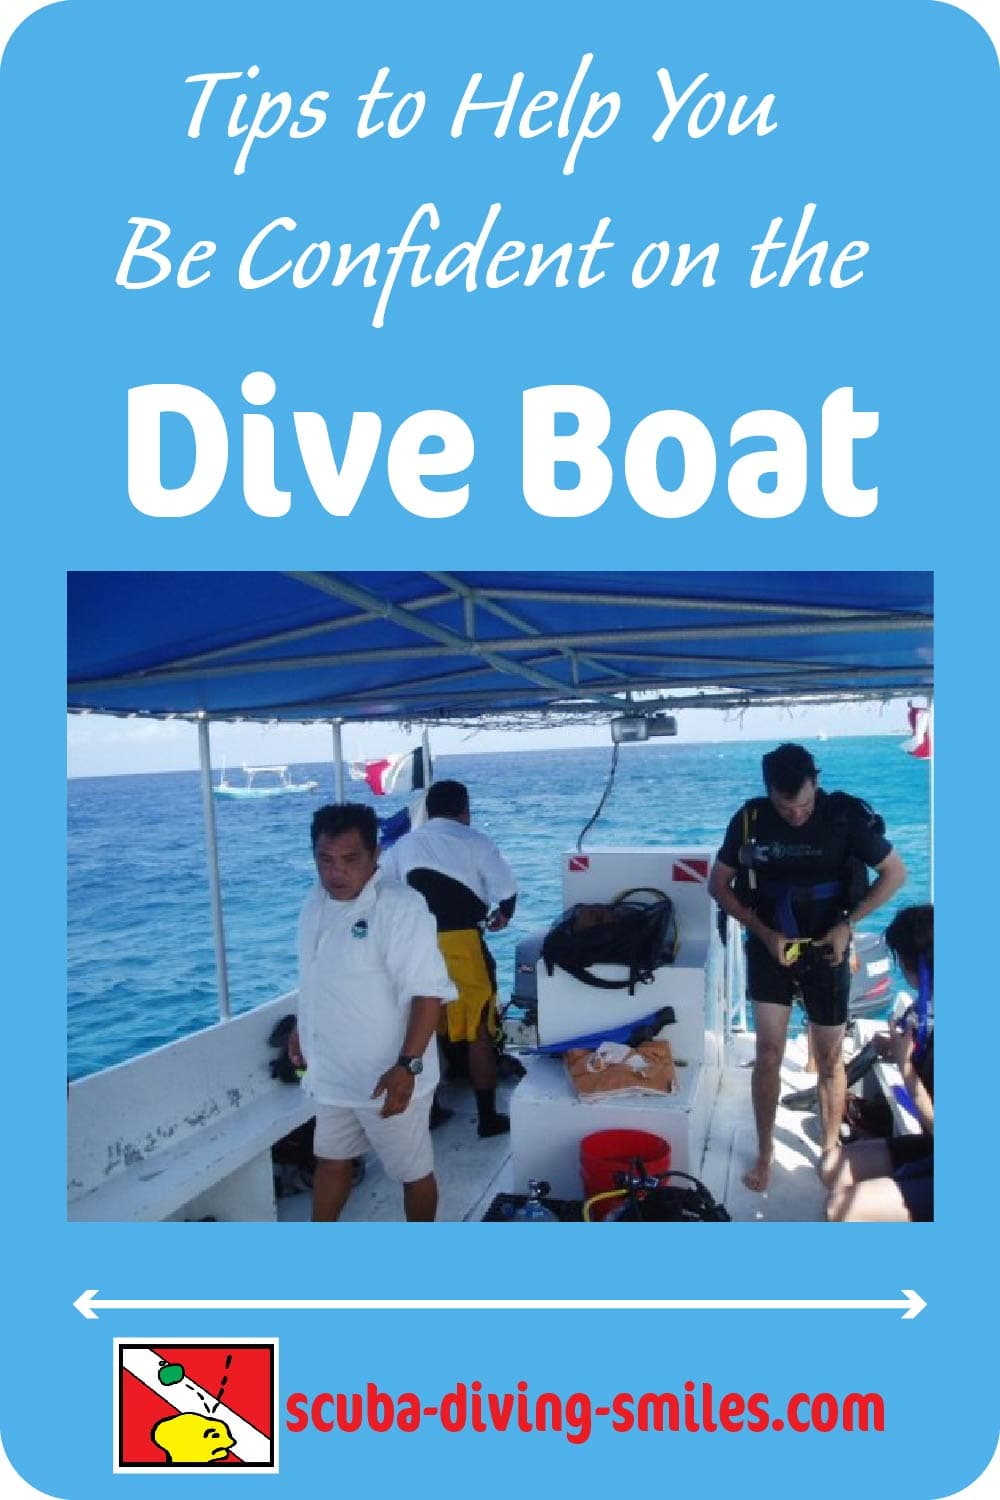 Boat scuba diving tips inforgraphic